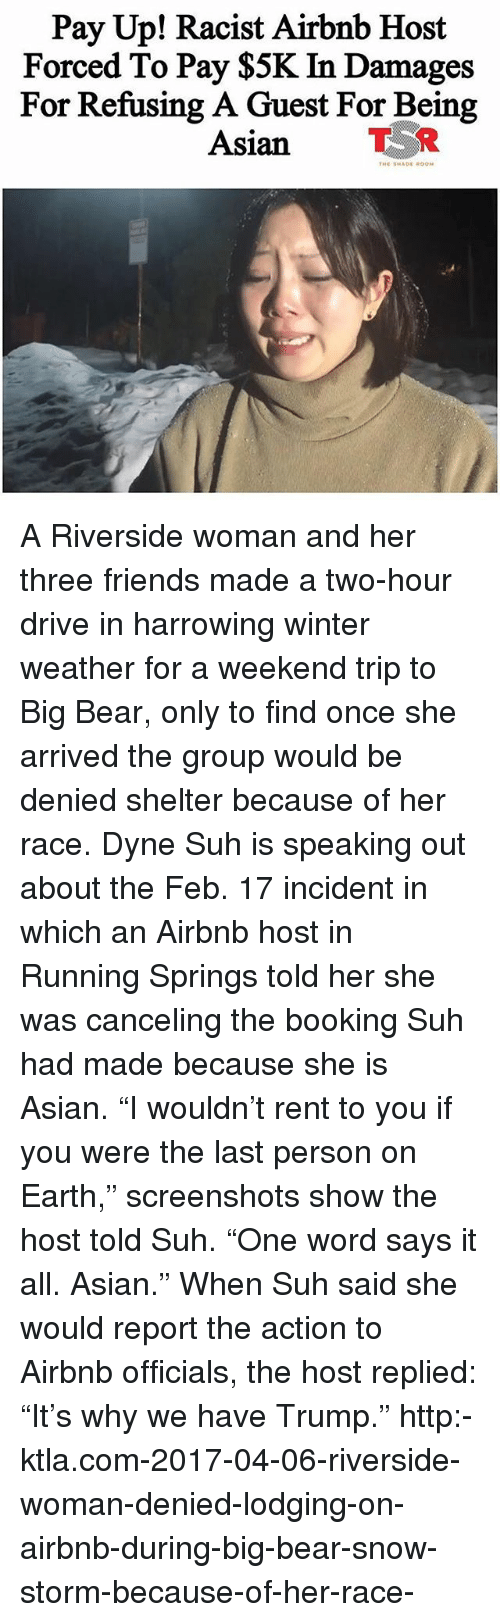 """Asian, Friends, and Memes: Pay Up! Racist Airbnb Host  Forced To Pay $5K In Damages  For Refusing A Guest For Being  Asian TR A Riverside woman and her three friends made a two-hour drive in harrowing winter weather for a weekend trip to Big Bear, only to find once she arrived the group would be denied shelter because of her race. Dyne Suh is speaking out about the Feb. 17 incident in which an Airbnb host in Running Springs told her she was canceling the booking Suh had made because she is Asian. """"I wouldn't rent to you if you were the last person on Earth,"""" screenshots show the host told Suh. """"One word says it all. Asian."""" When Suh said she would report the action to Airbnb officials, the host replied: """"It's why we have Trump."""" http:-ktla.com-2017-04-06-riverside-woman-denied-lodging-on-airbnb-during-big-bear-snow-storm-because-of-her-race-"""